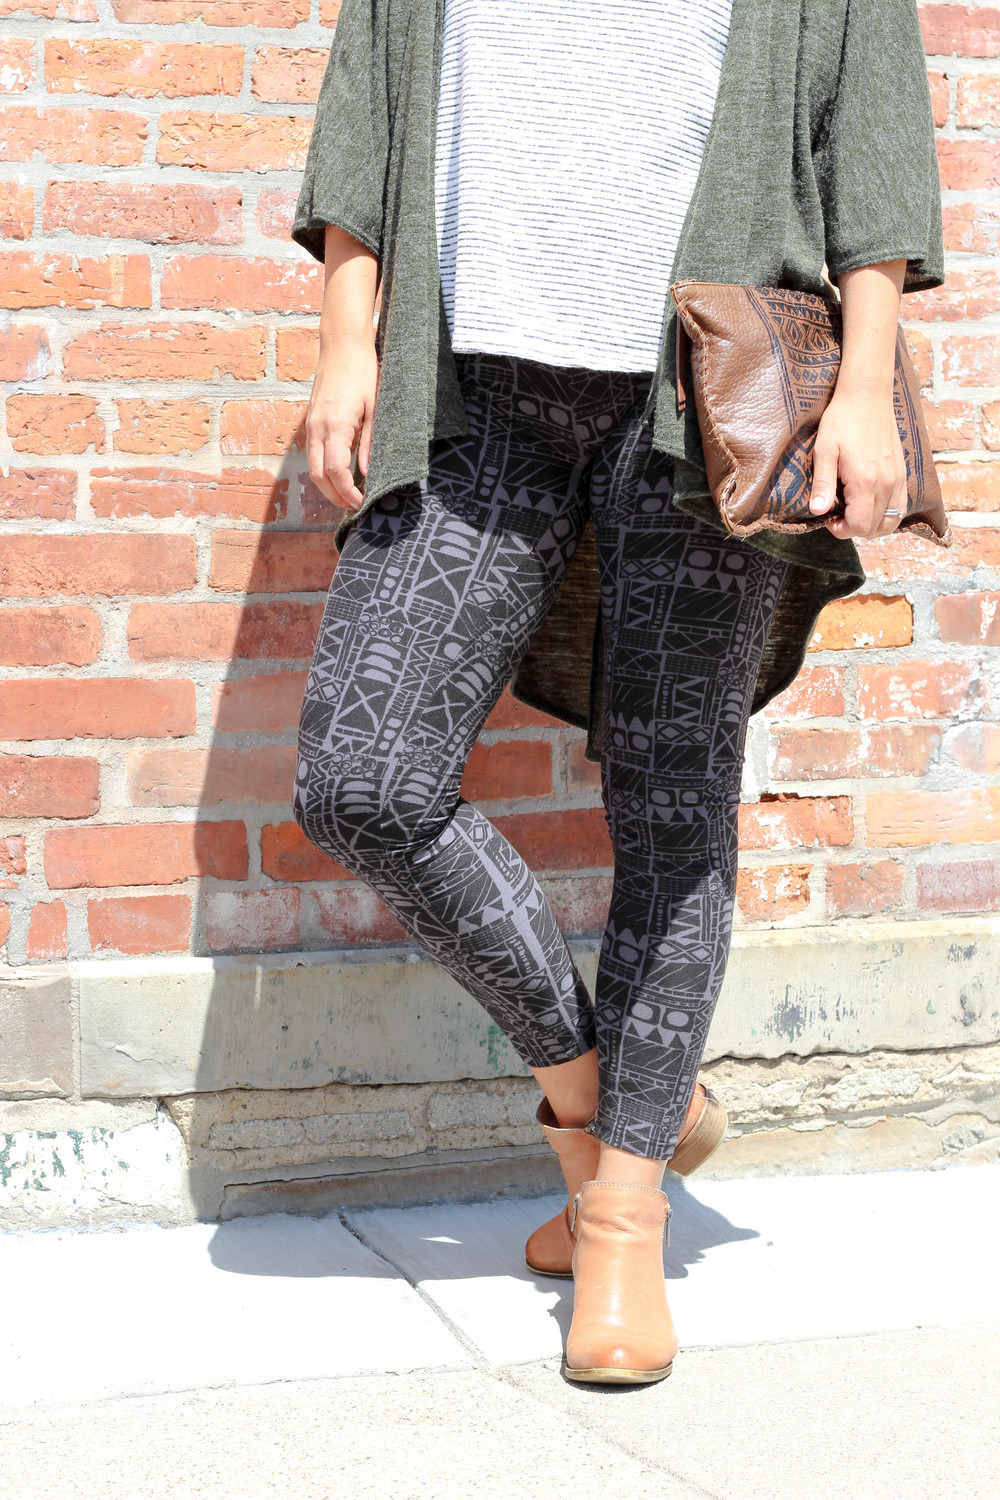 pattern leggings with strips, mixing patterns done right